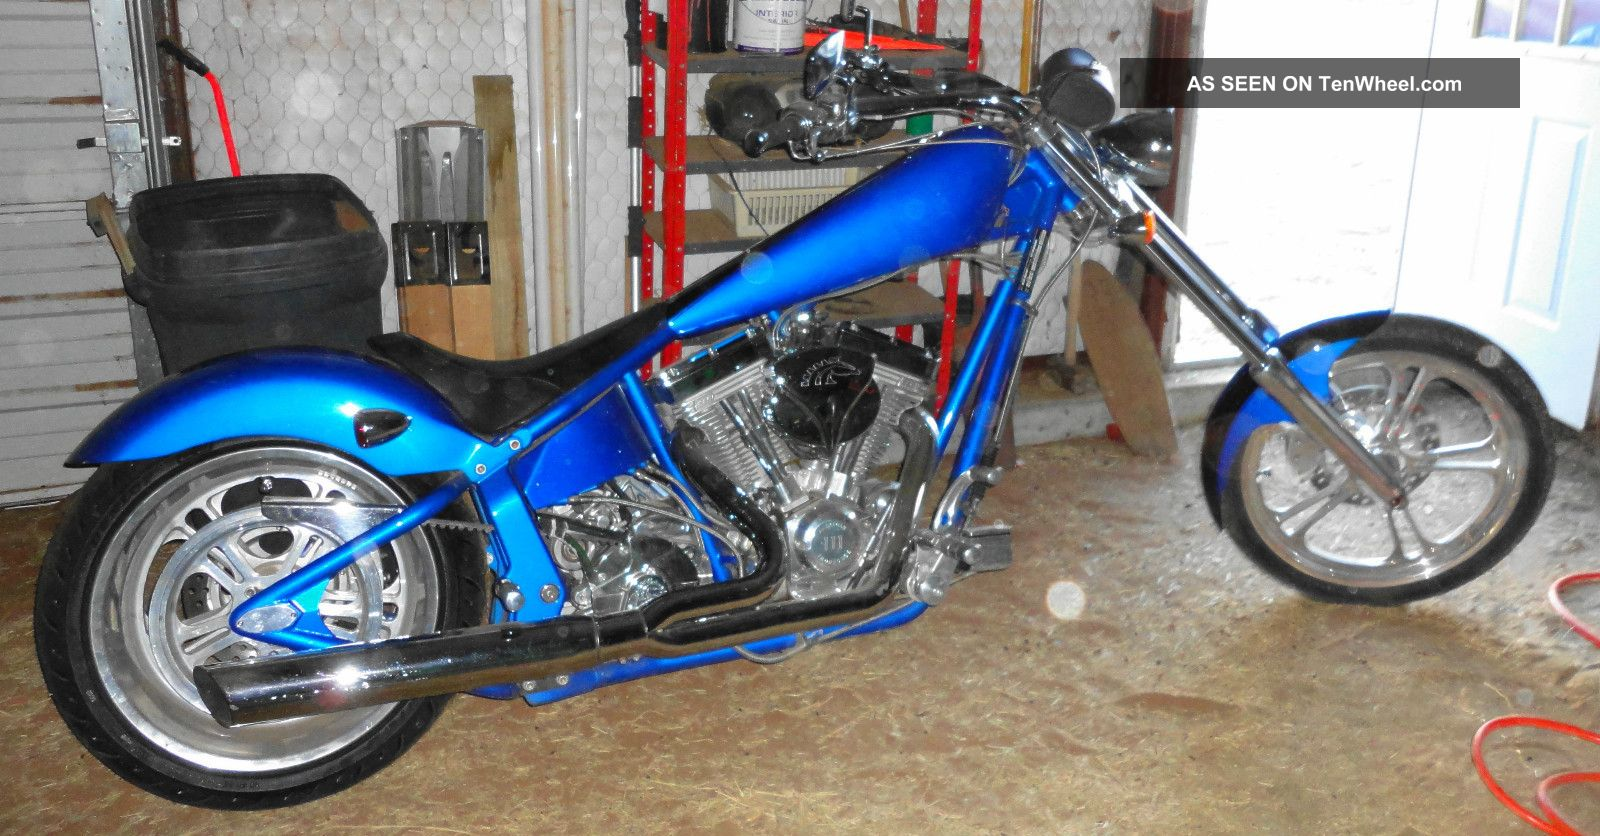 2005 Iron Horse Legend Chopper Motorcycle